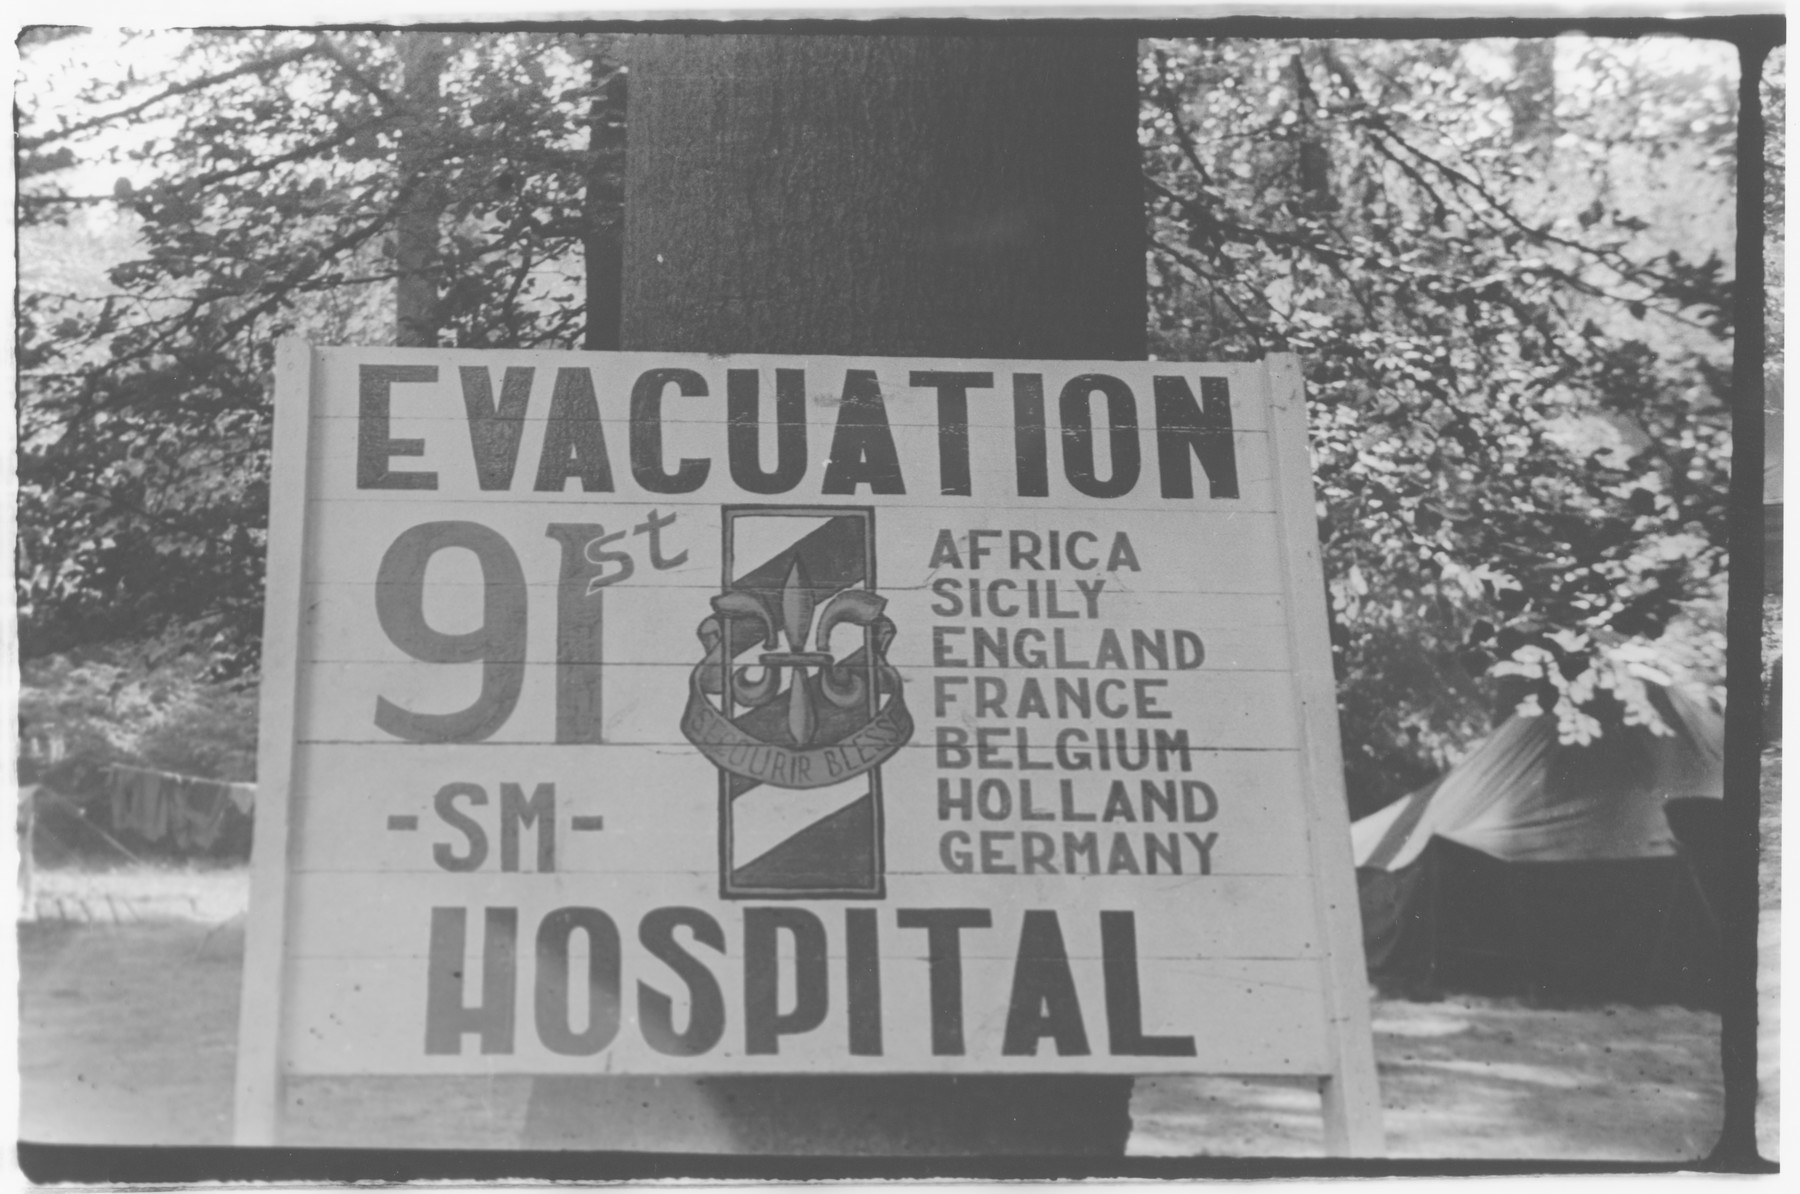 A sign for the the 91st Evacuation Hospital Unit.